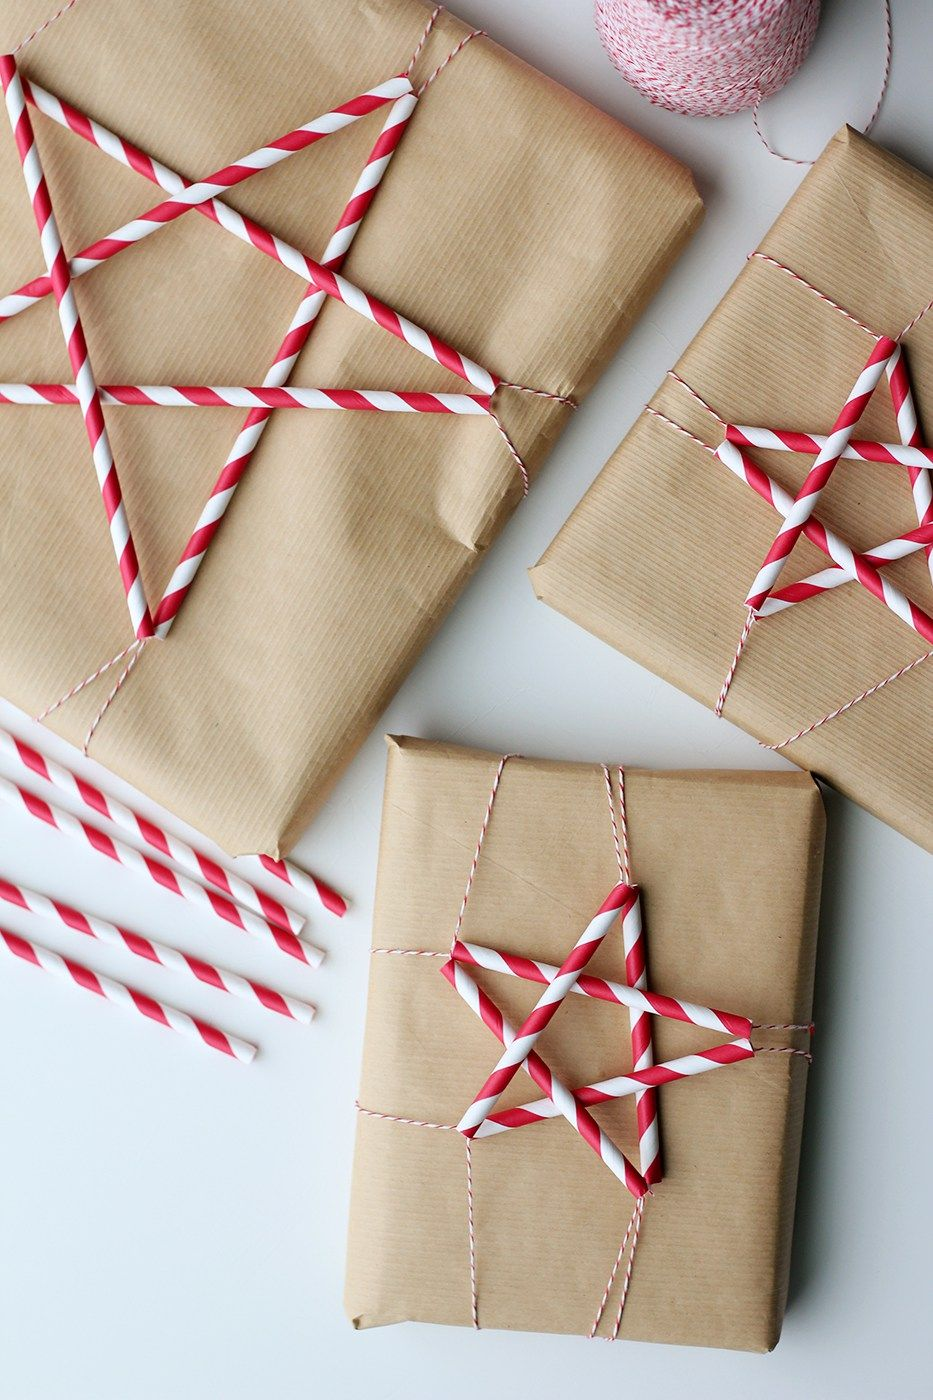 39 Unique Gift Wrapping Ideas For Christmas How To Wrap Holiday